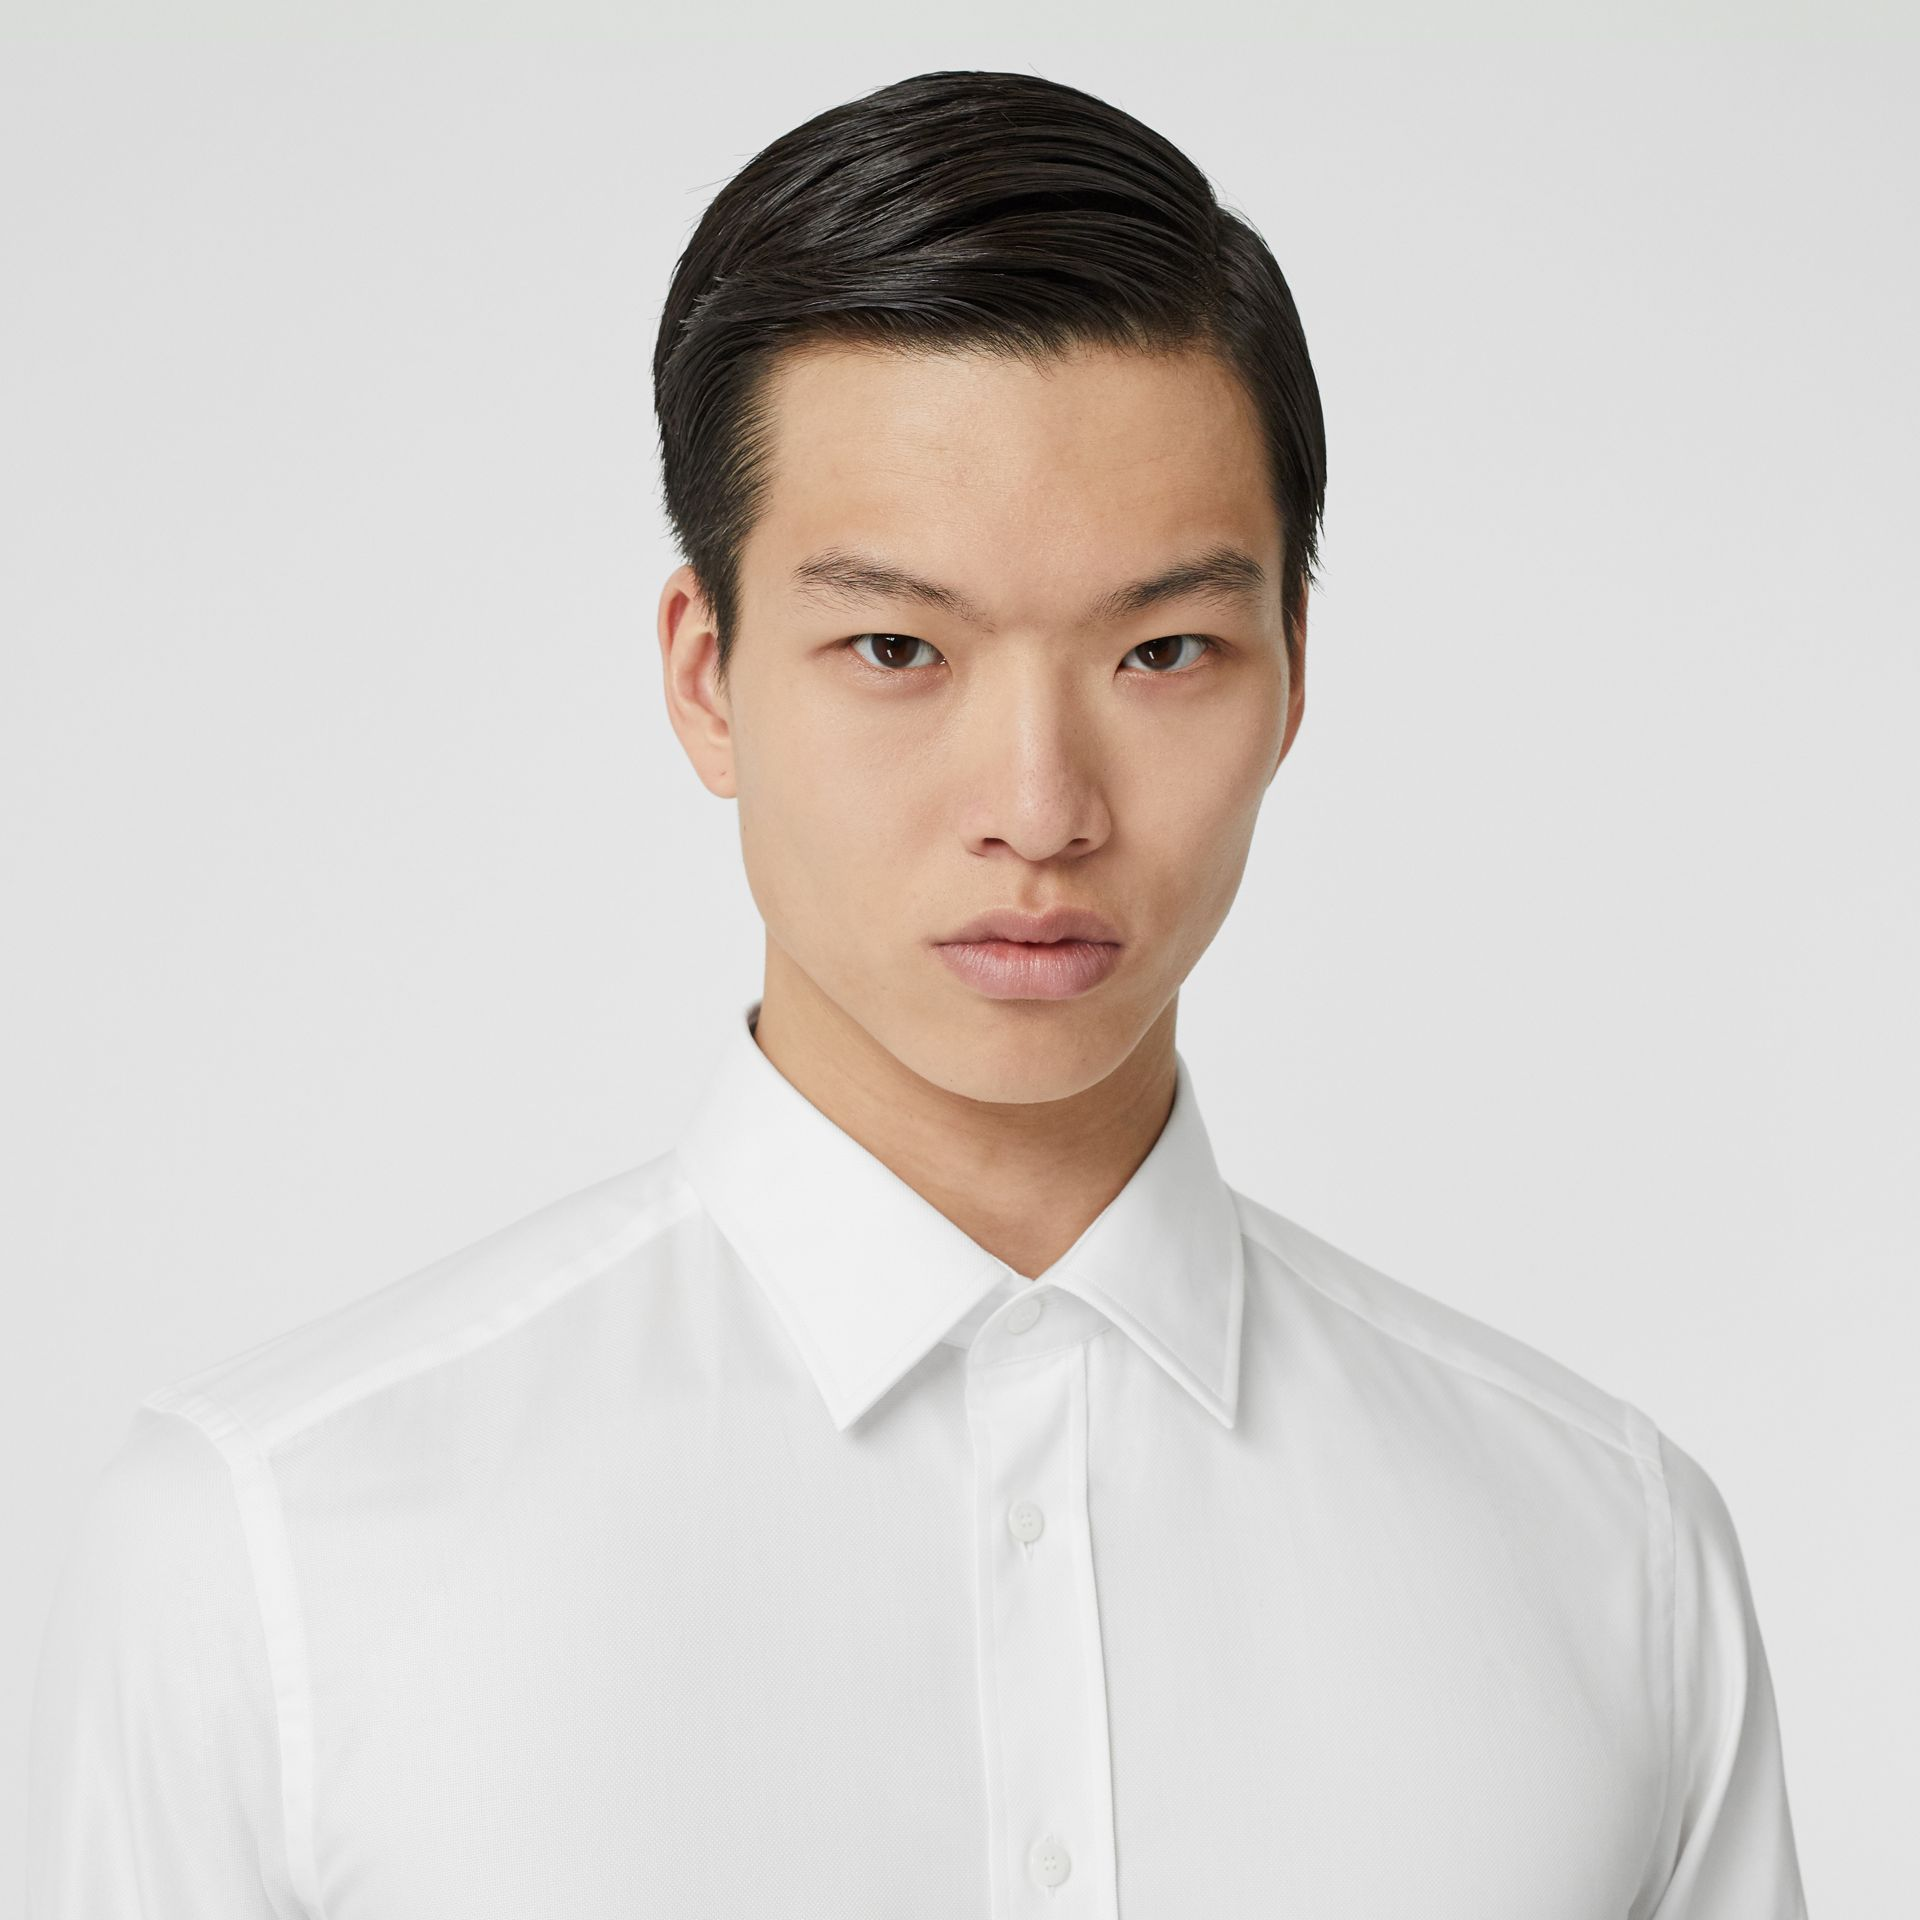 Classic Fit Monogram Motif Cotton Oxford Shirt in White - Men | Burberry - gallery image 6